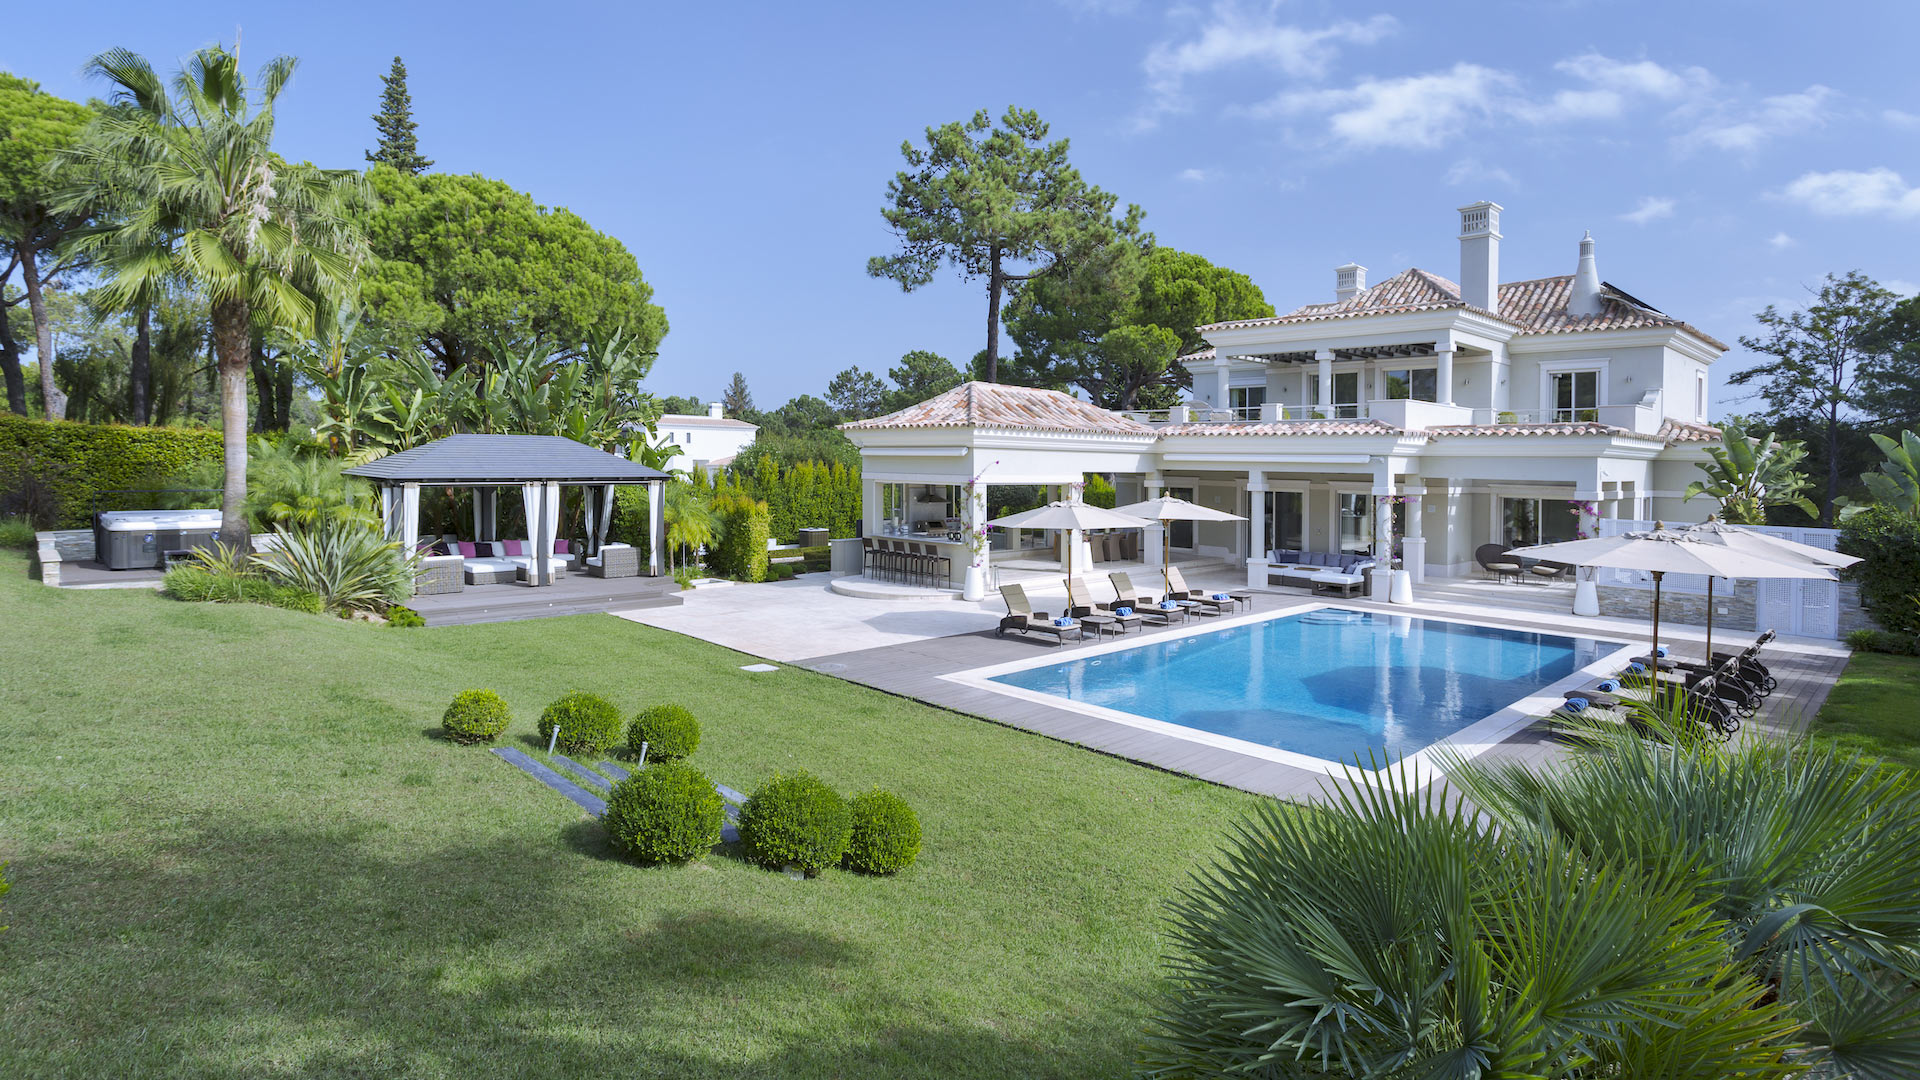 Villa Villa Skies, Rental in Algarve